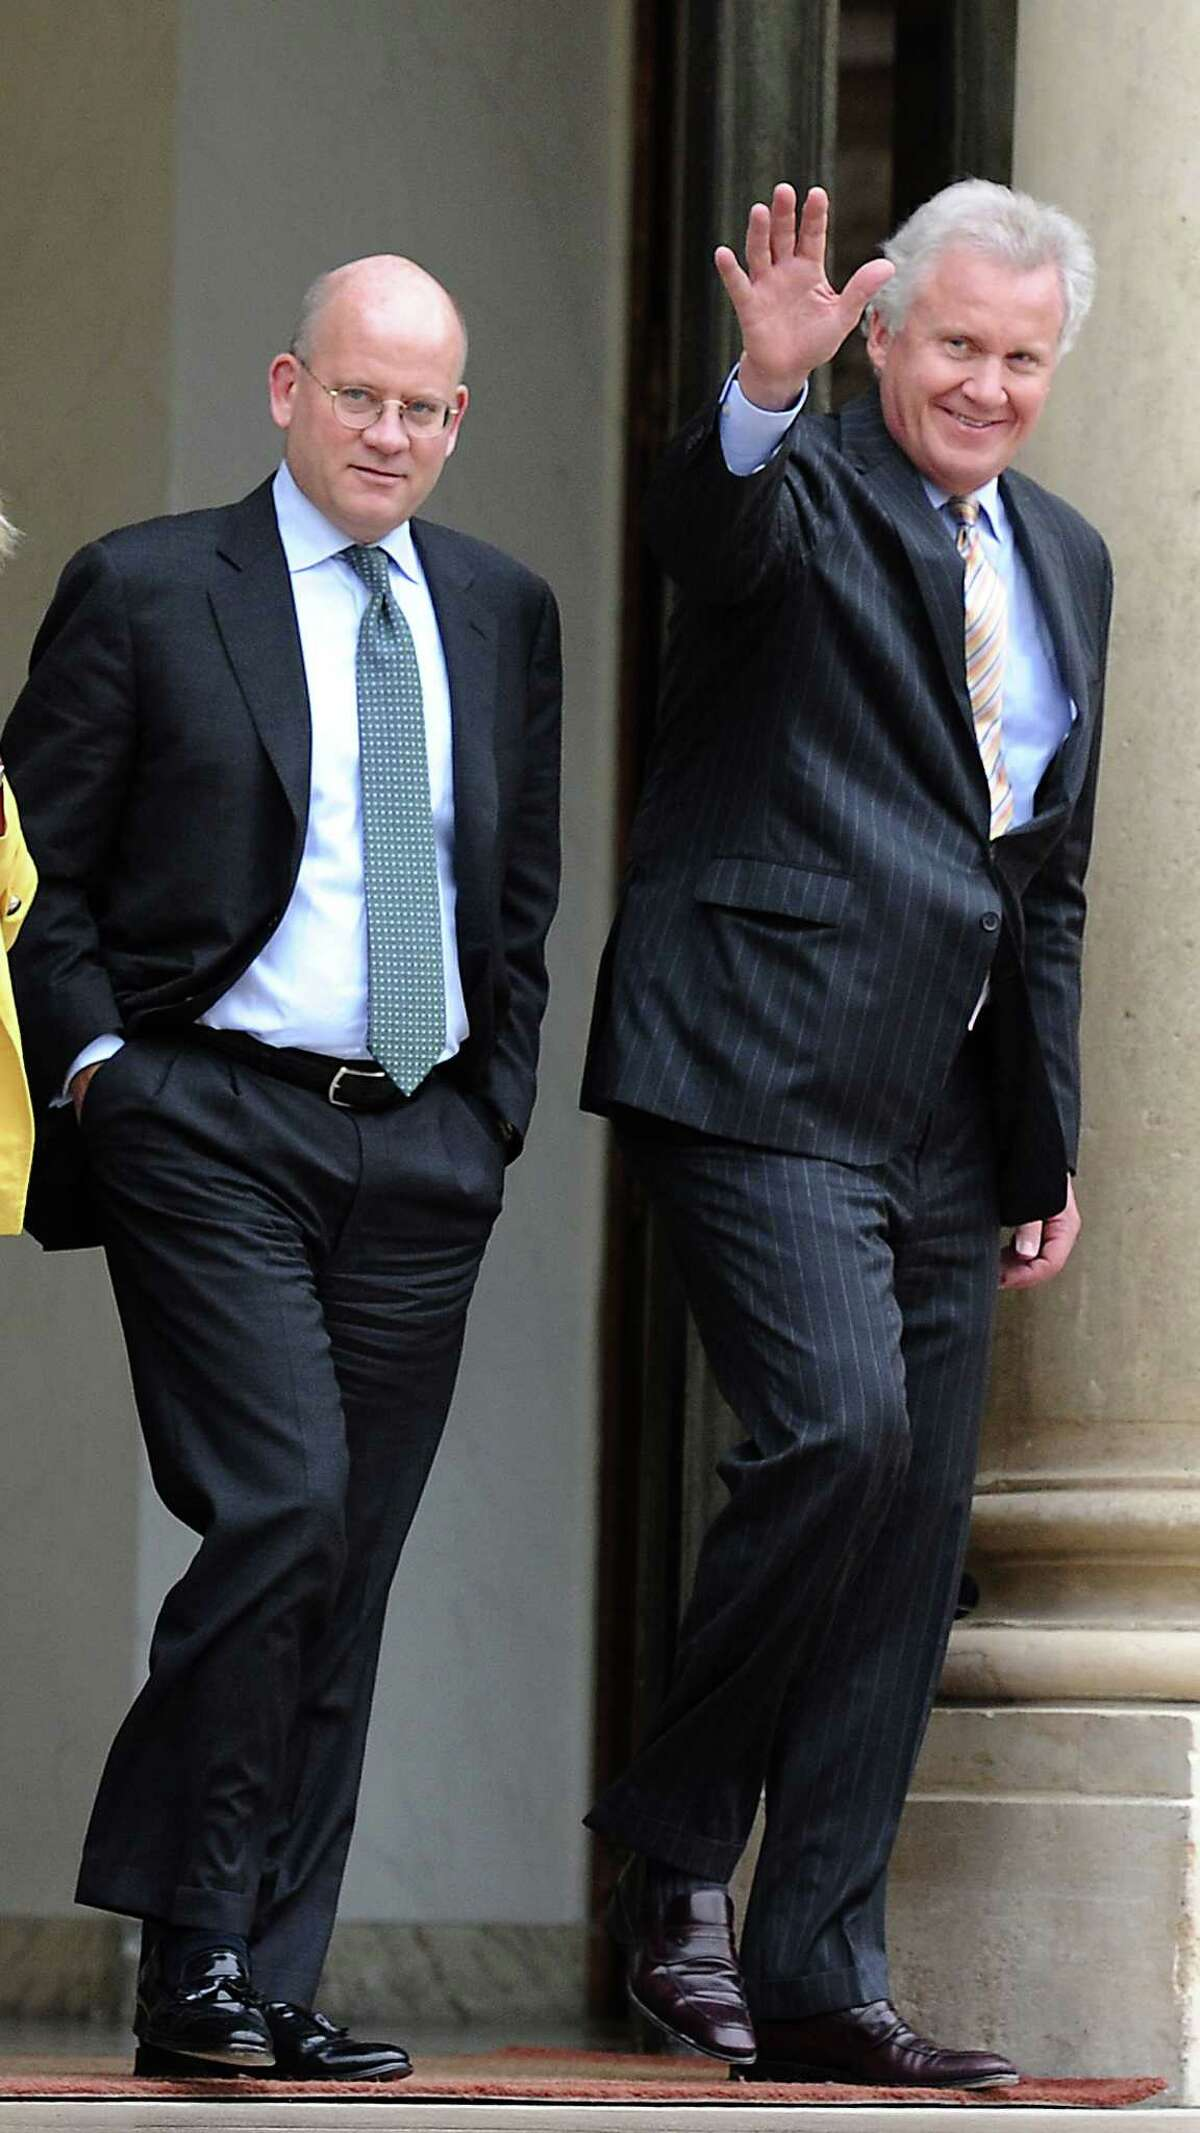 General Electric's chief executive, Jeffrey Immelt, right, is followed in 2014 by a vice president, John Flannery, who will become CEO this summer.